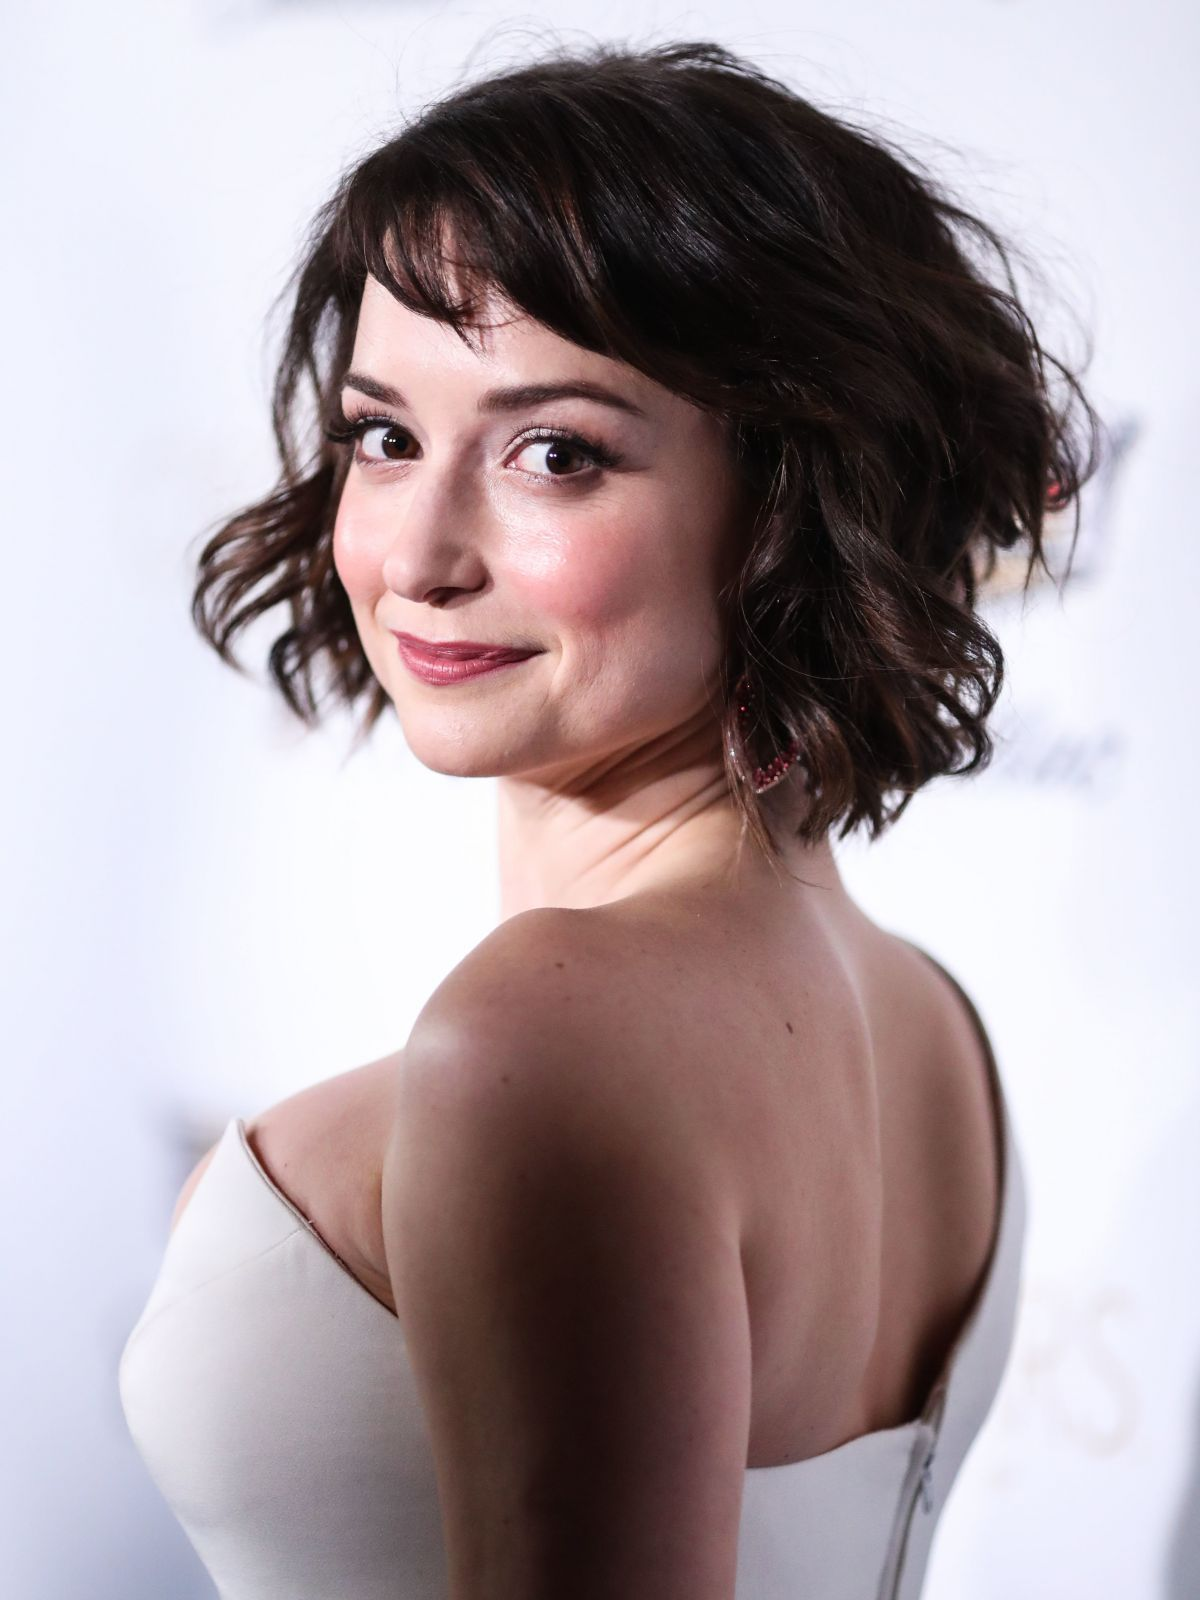 2019 Milana Vayntrub nudes (62 photo), Ass, Hot, Twitter, cameltoe 2017